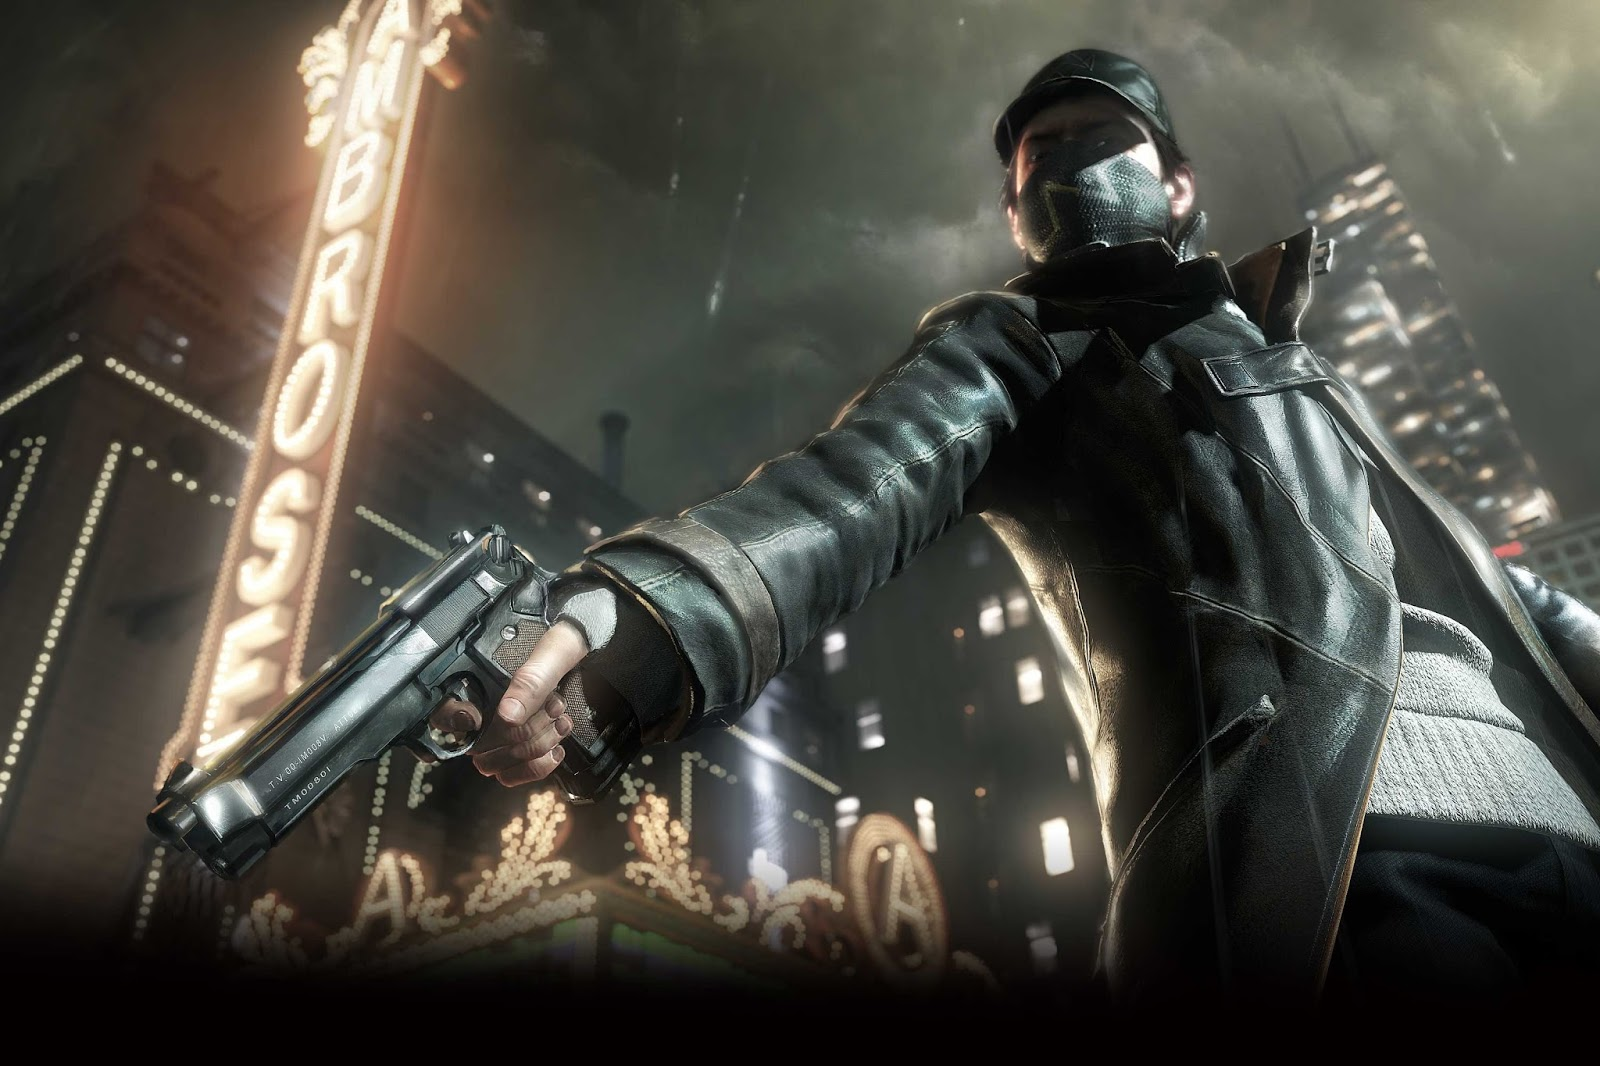 aiden pearce in watch dogs wallpapers - Watch Dogs Aiden Pearce Wallpaper Video Games Blogger